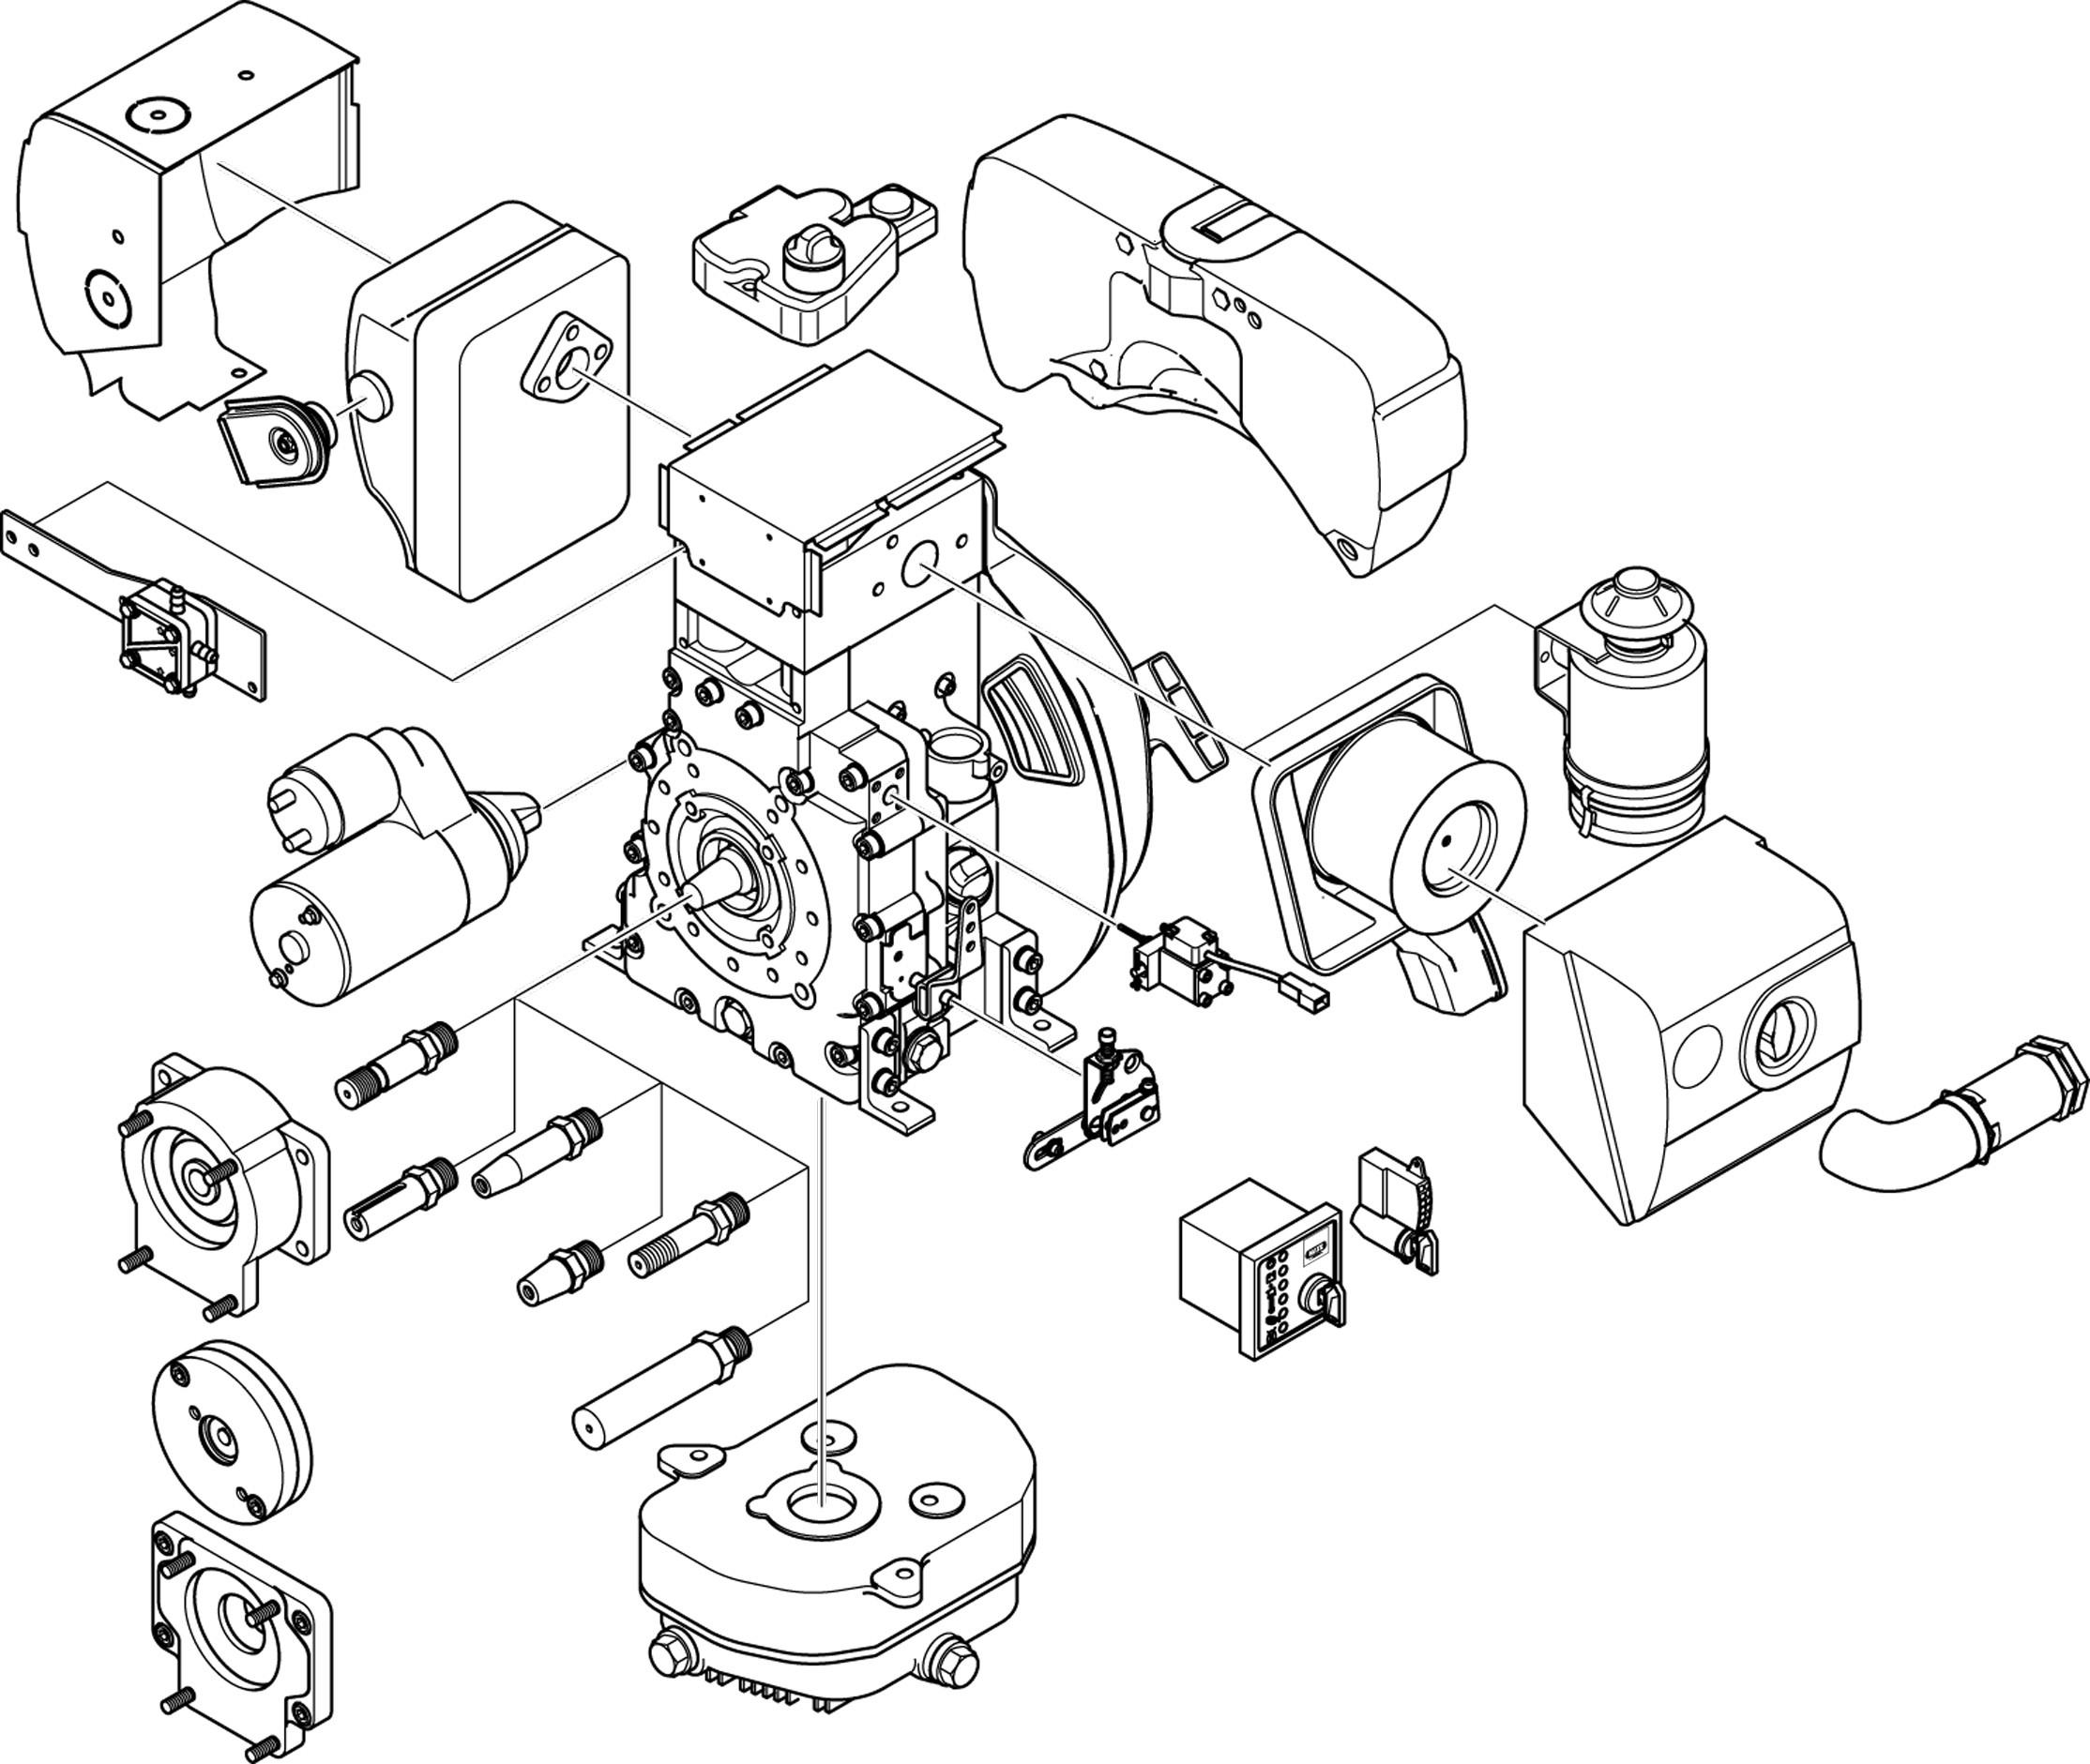 Car Engine Parts with Diagram Hatz Engine Diagram Another Blog About Wiring Diagram • Of Car Engine Parts with Diagram